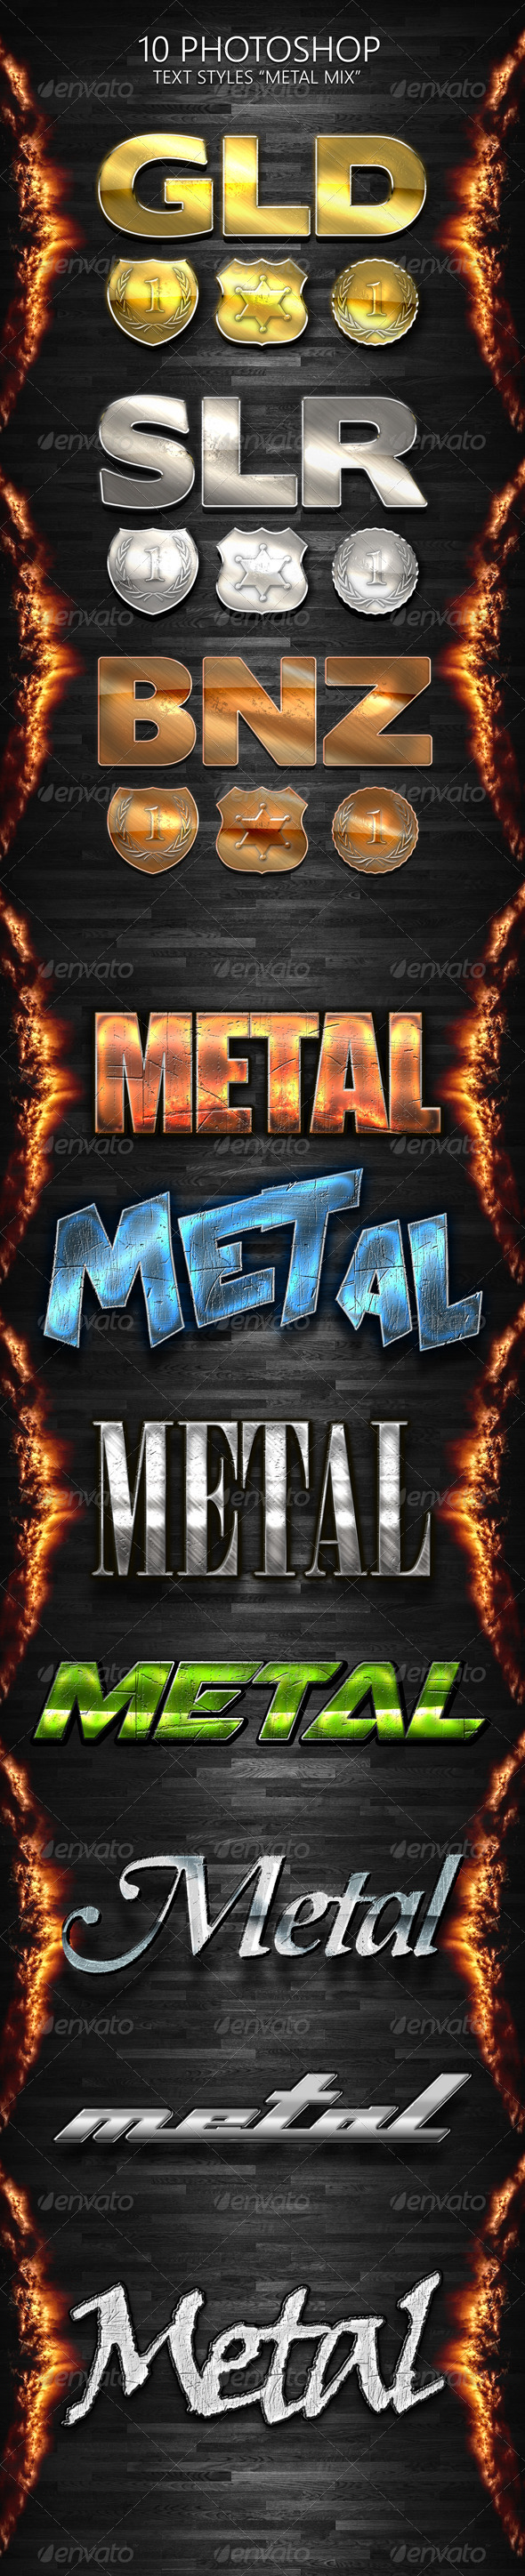 GraphicRiver 10 Photoshop Styles METAL MIX 6968675